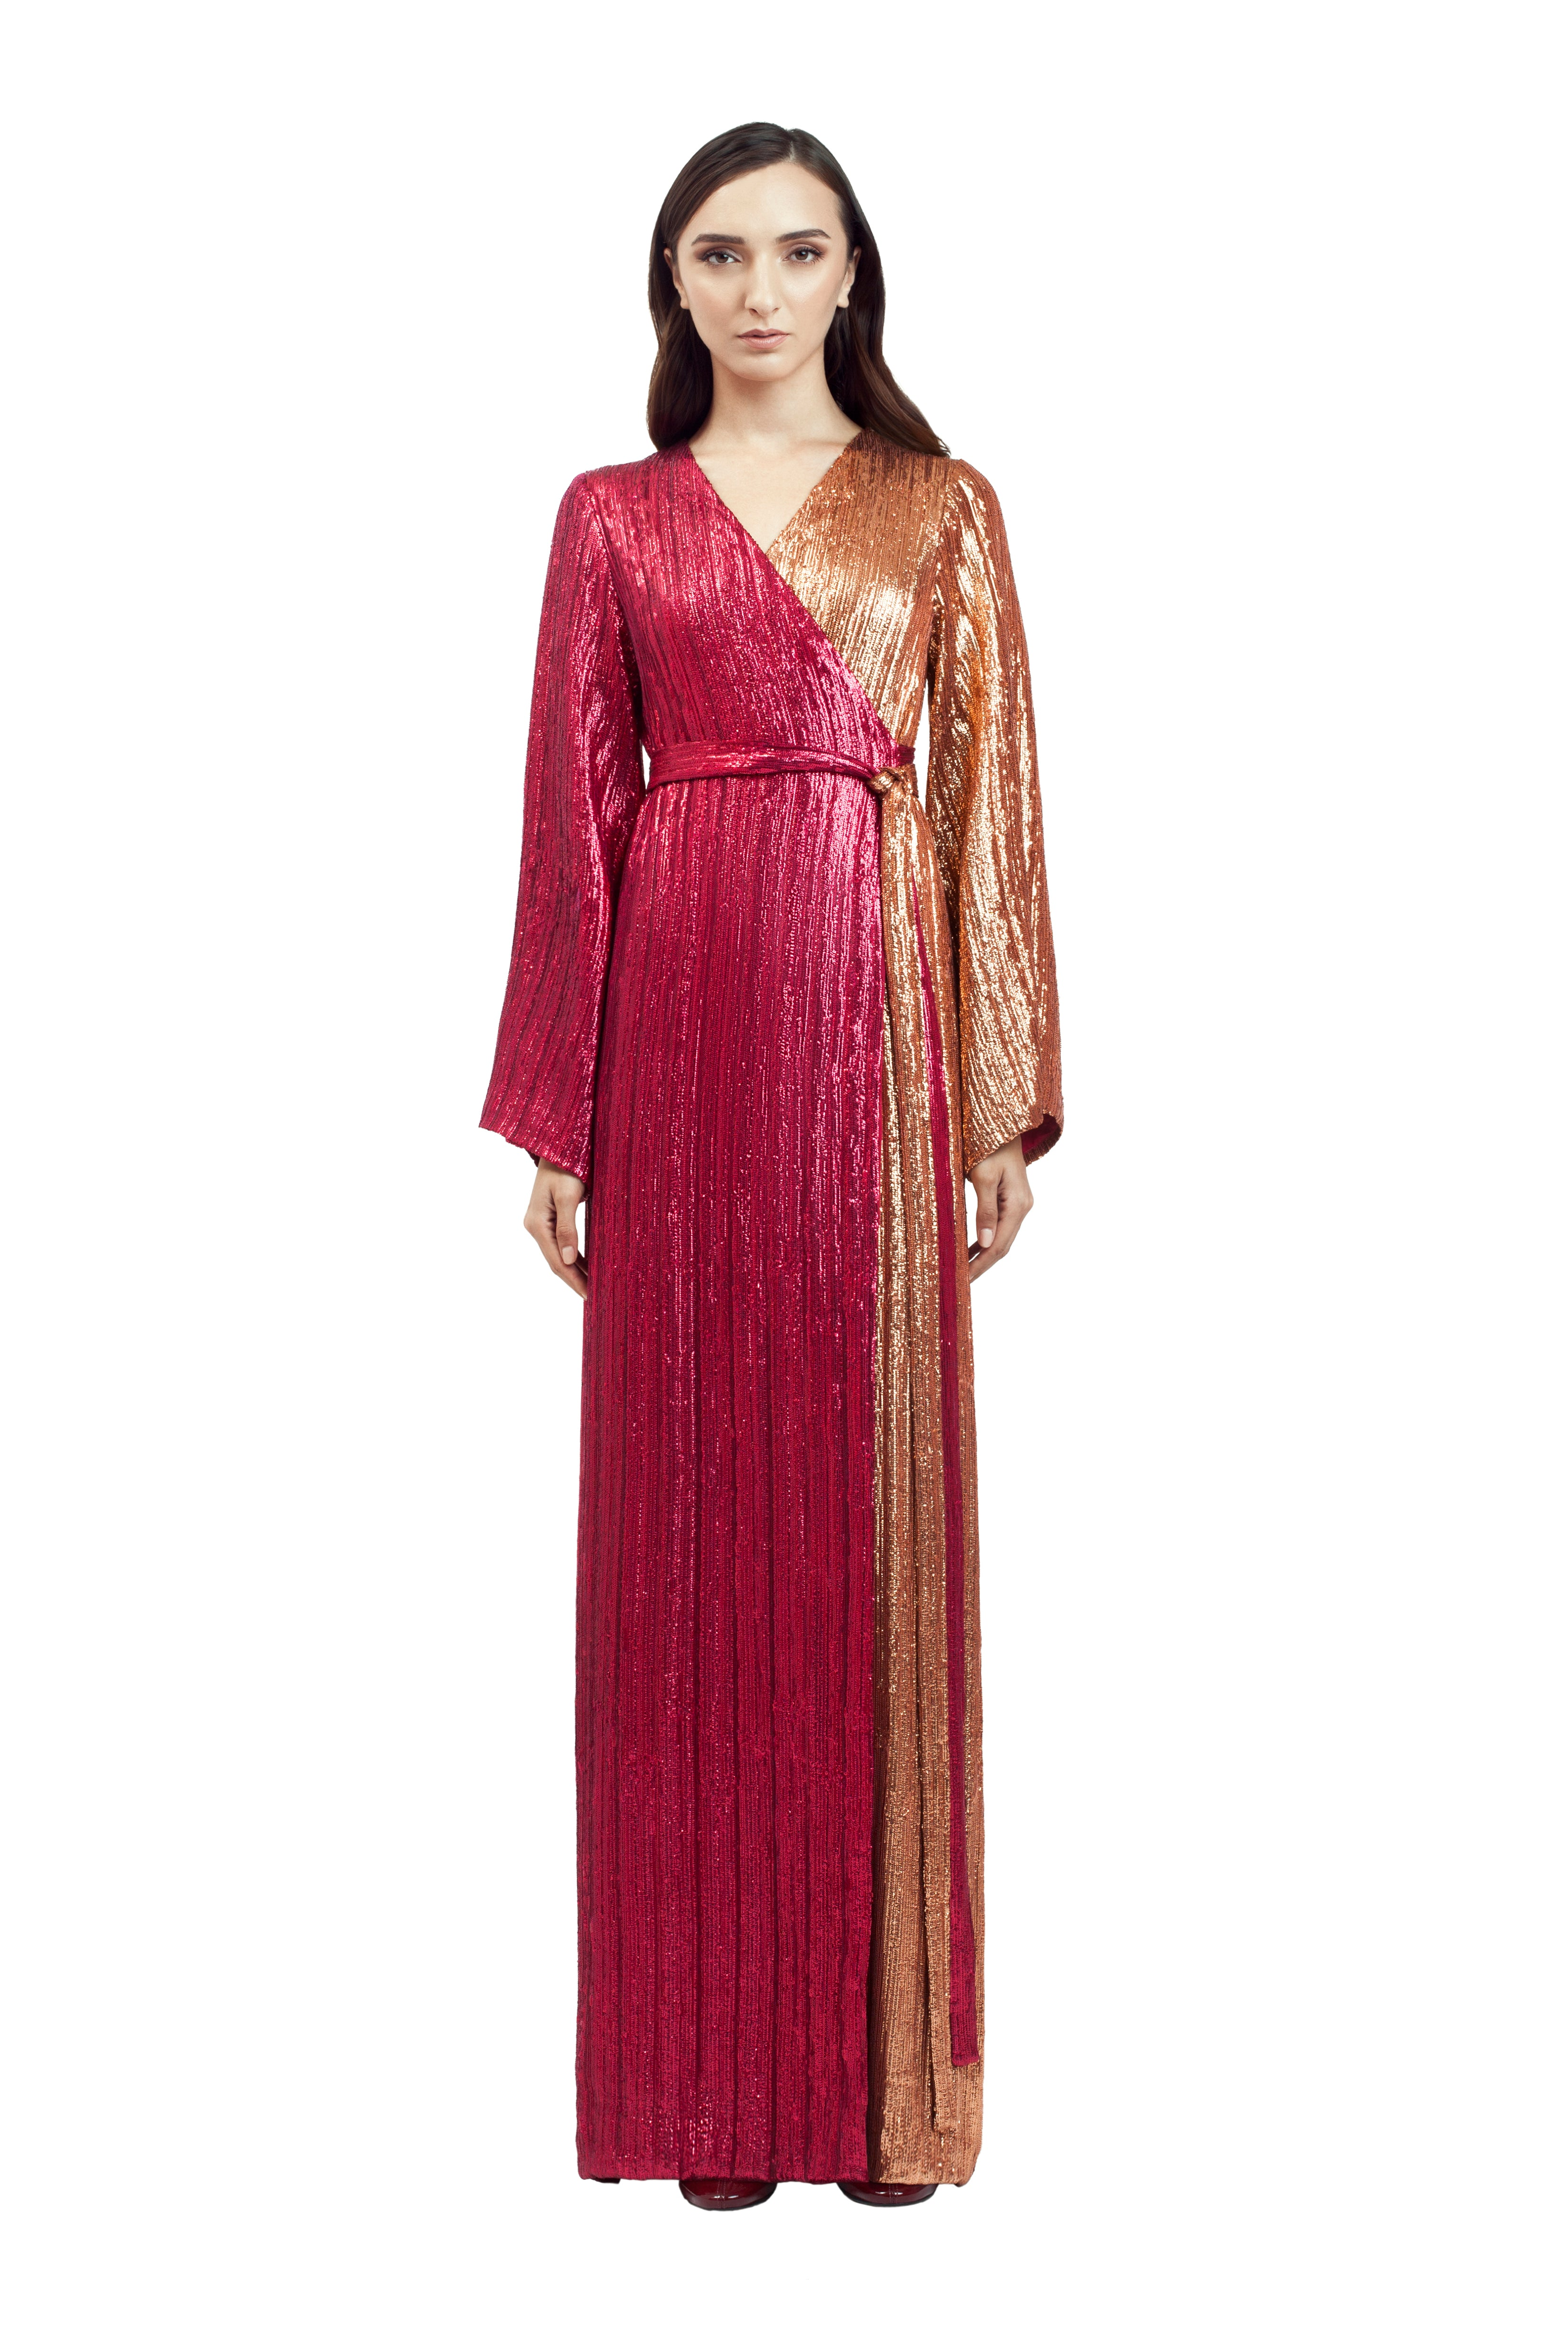 TWO-TONE SEQUIN ROBE GOWN